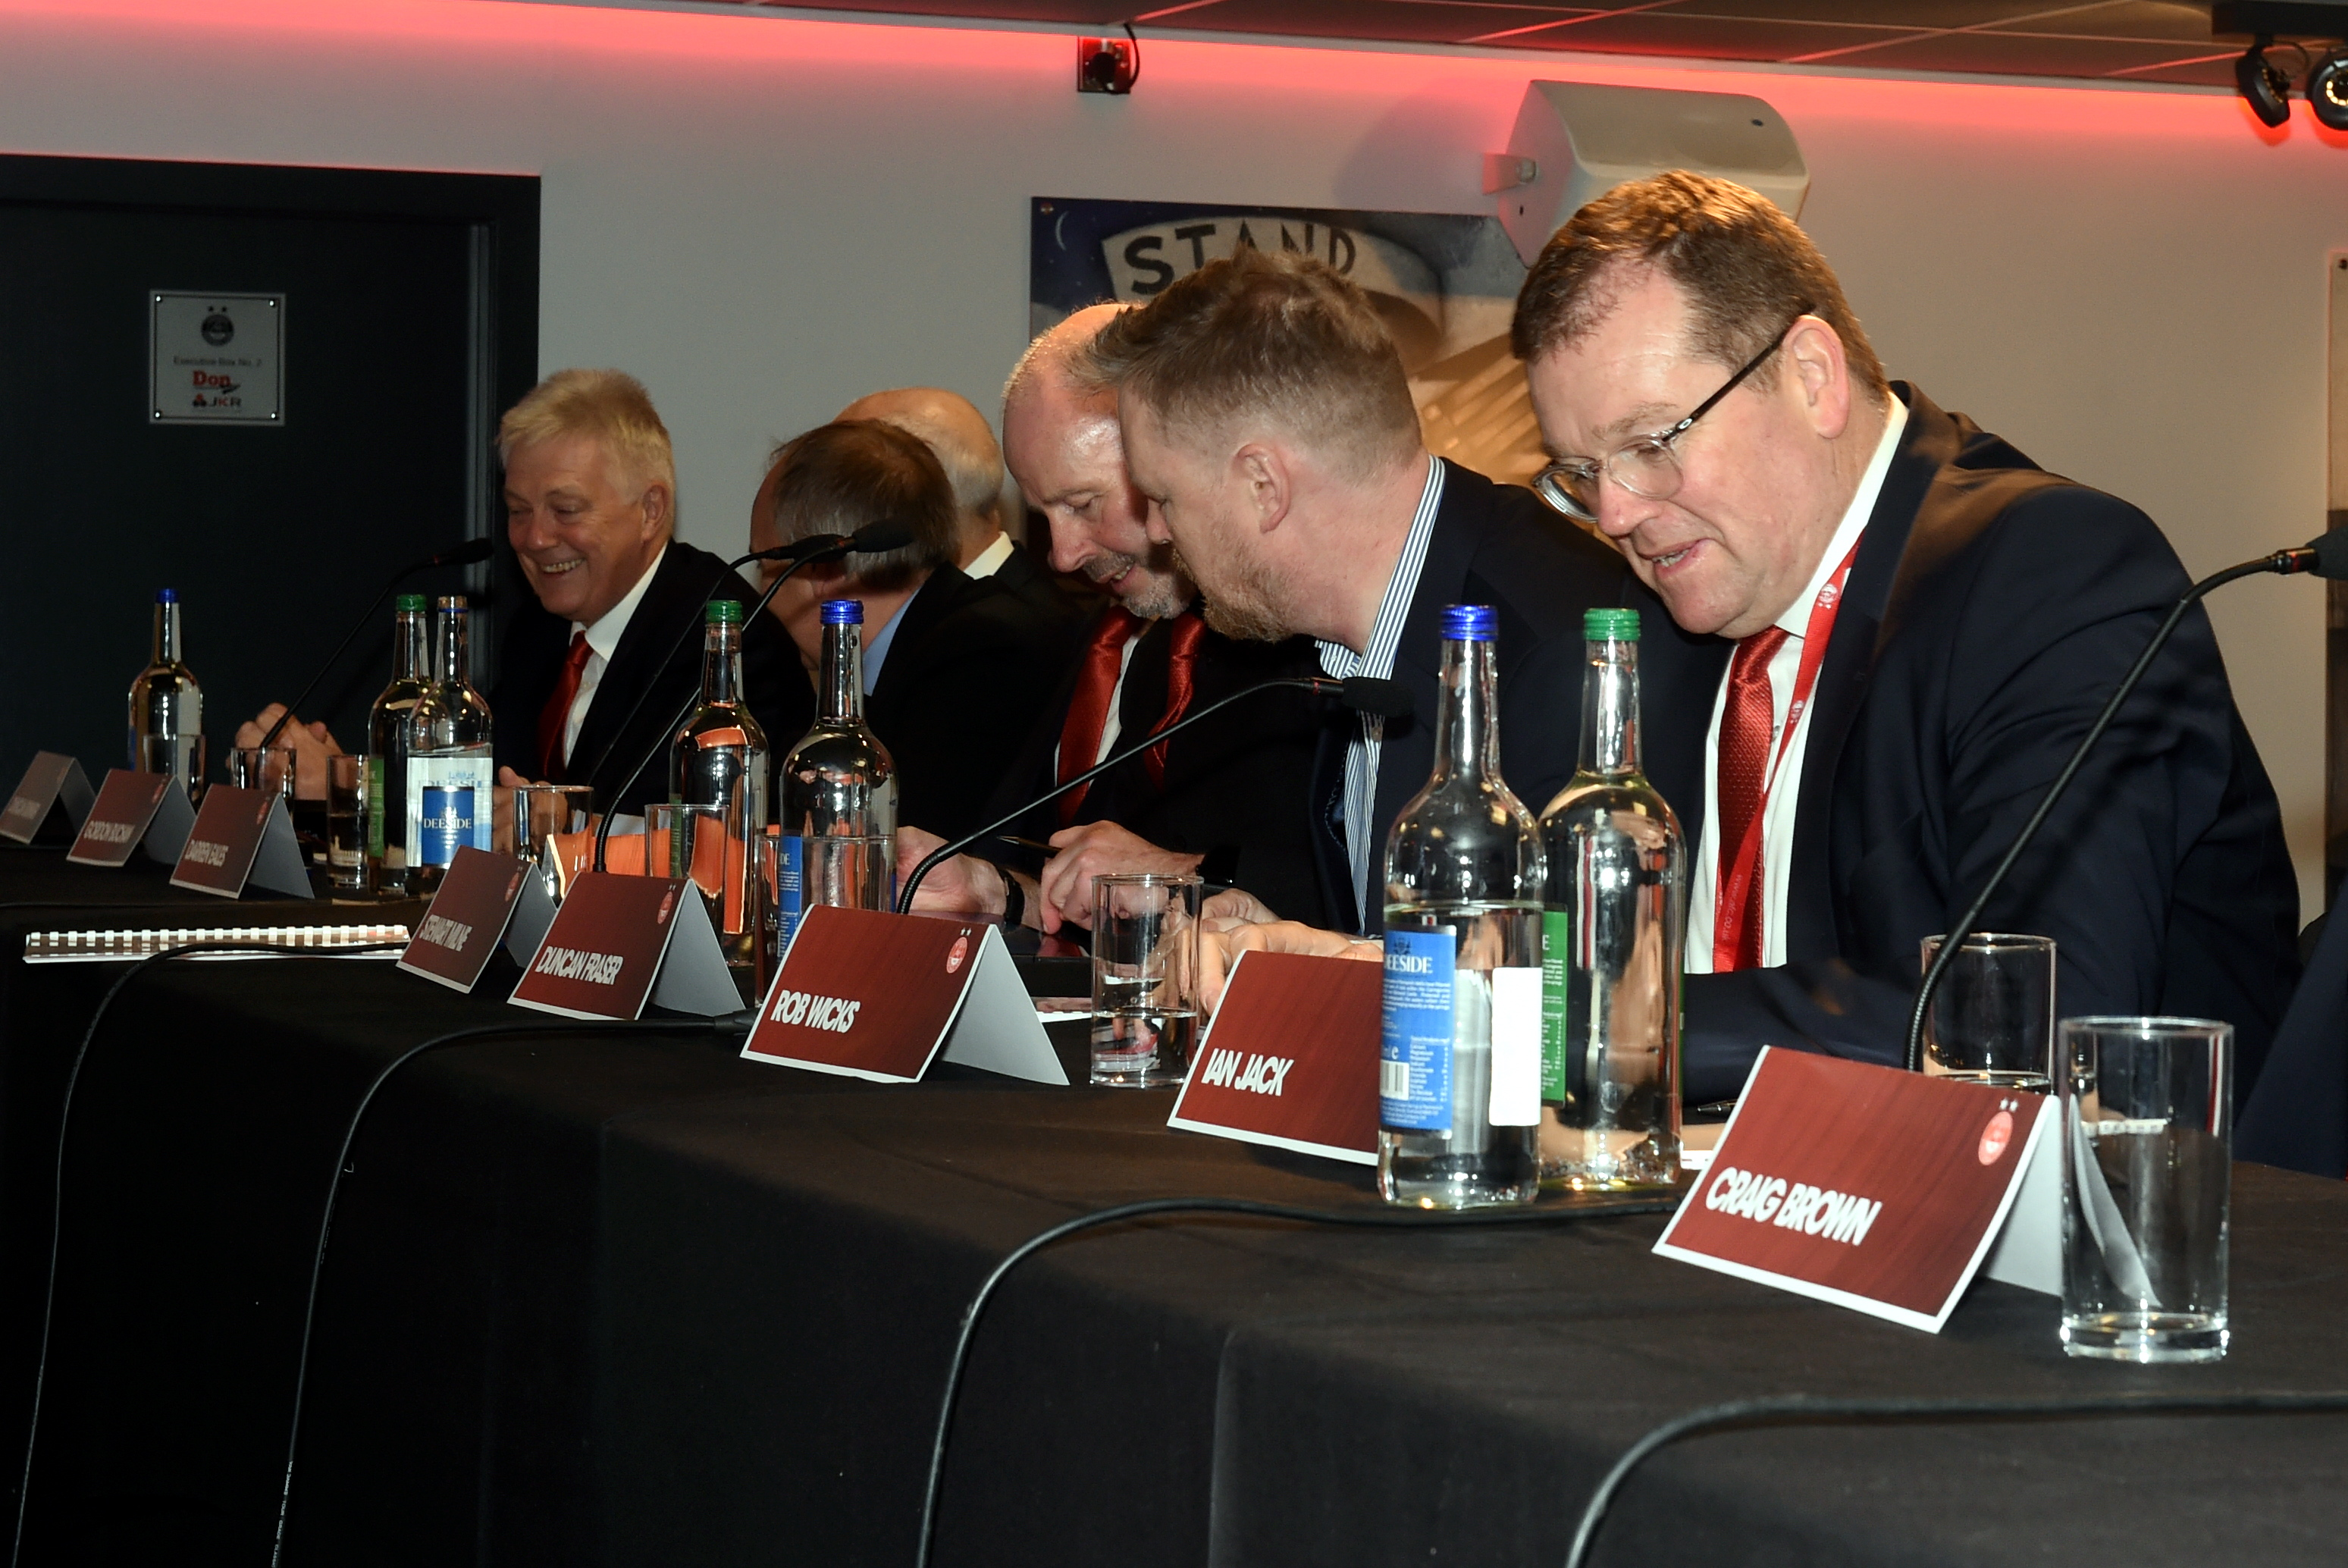 Aberdeen annual general meeting took place on Monday. Picture by Jim Irvine